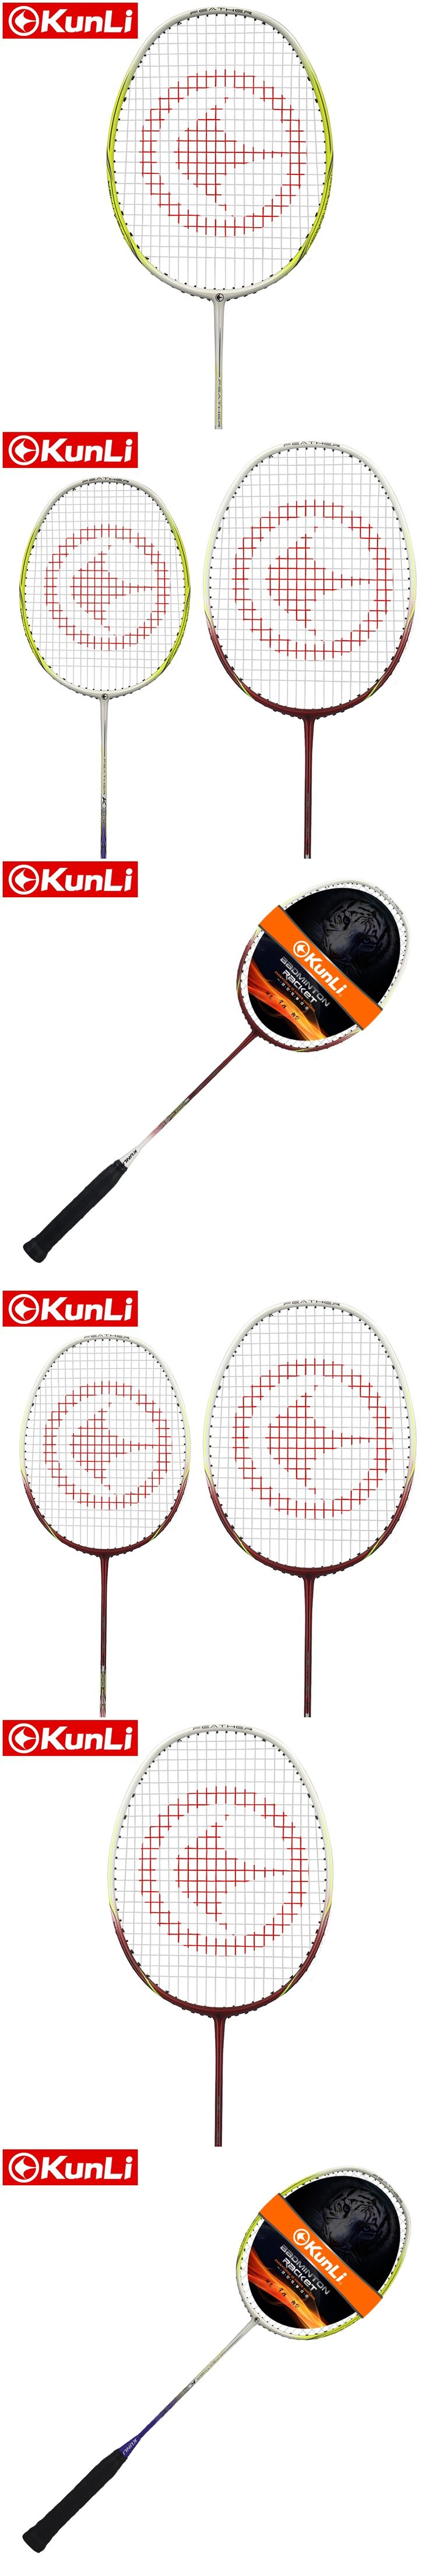 100%original KUNLI badminton racket feather K300 RED/YELLOW full carbon professional TB NANO technology feather racket